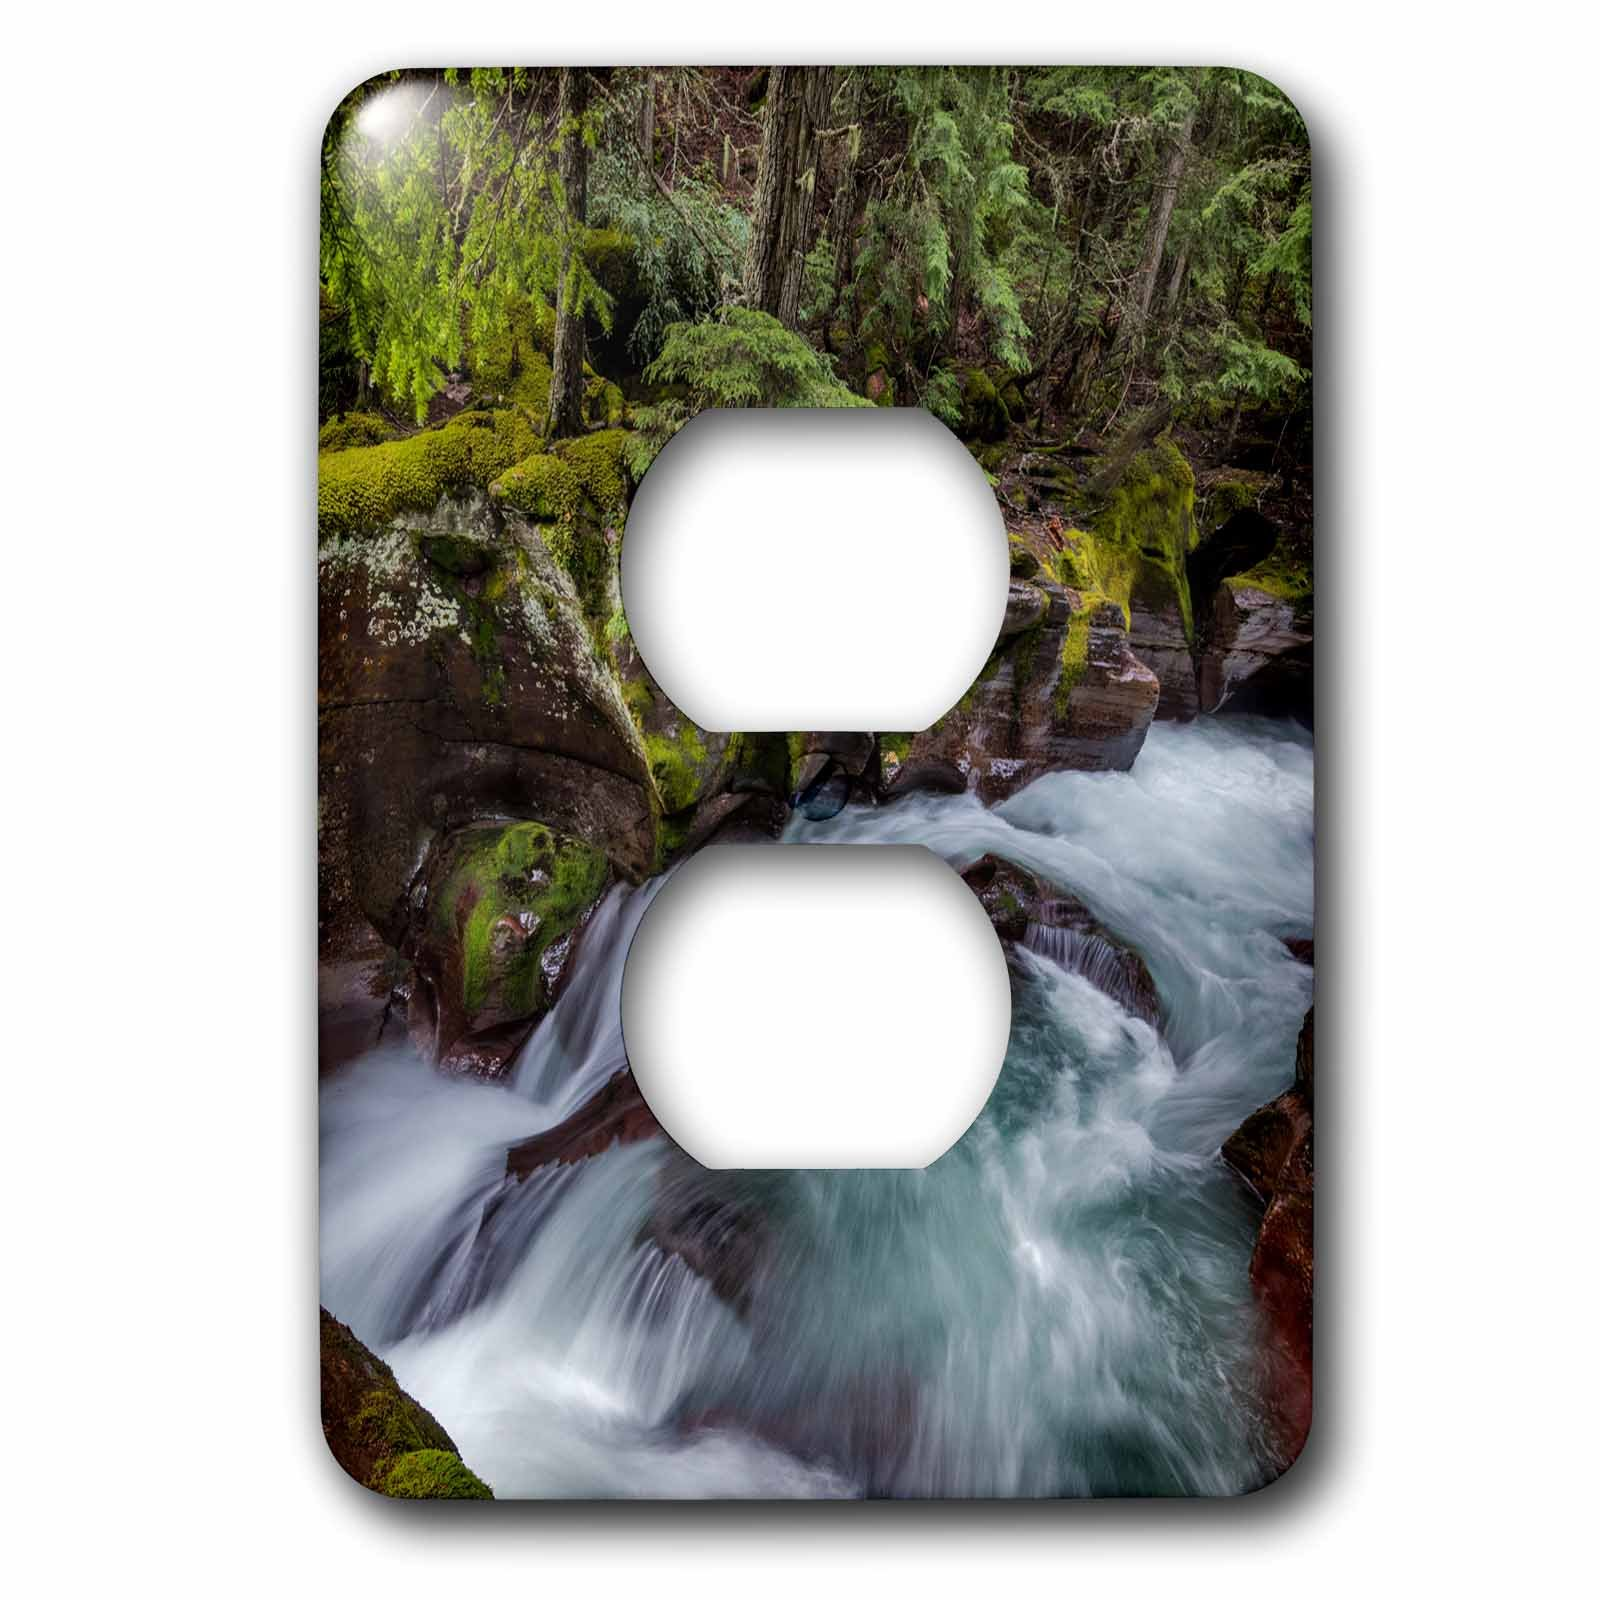 3dRose Danita Delimont - Rivers - Avalanche Gorge in Glacier National Park, Montana, USA - Light Switch Covers - 2 plug outlet cover (lsp_279213_6) by 3dRose